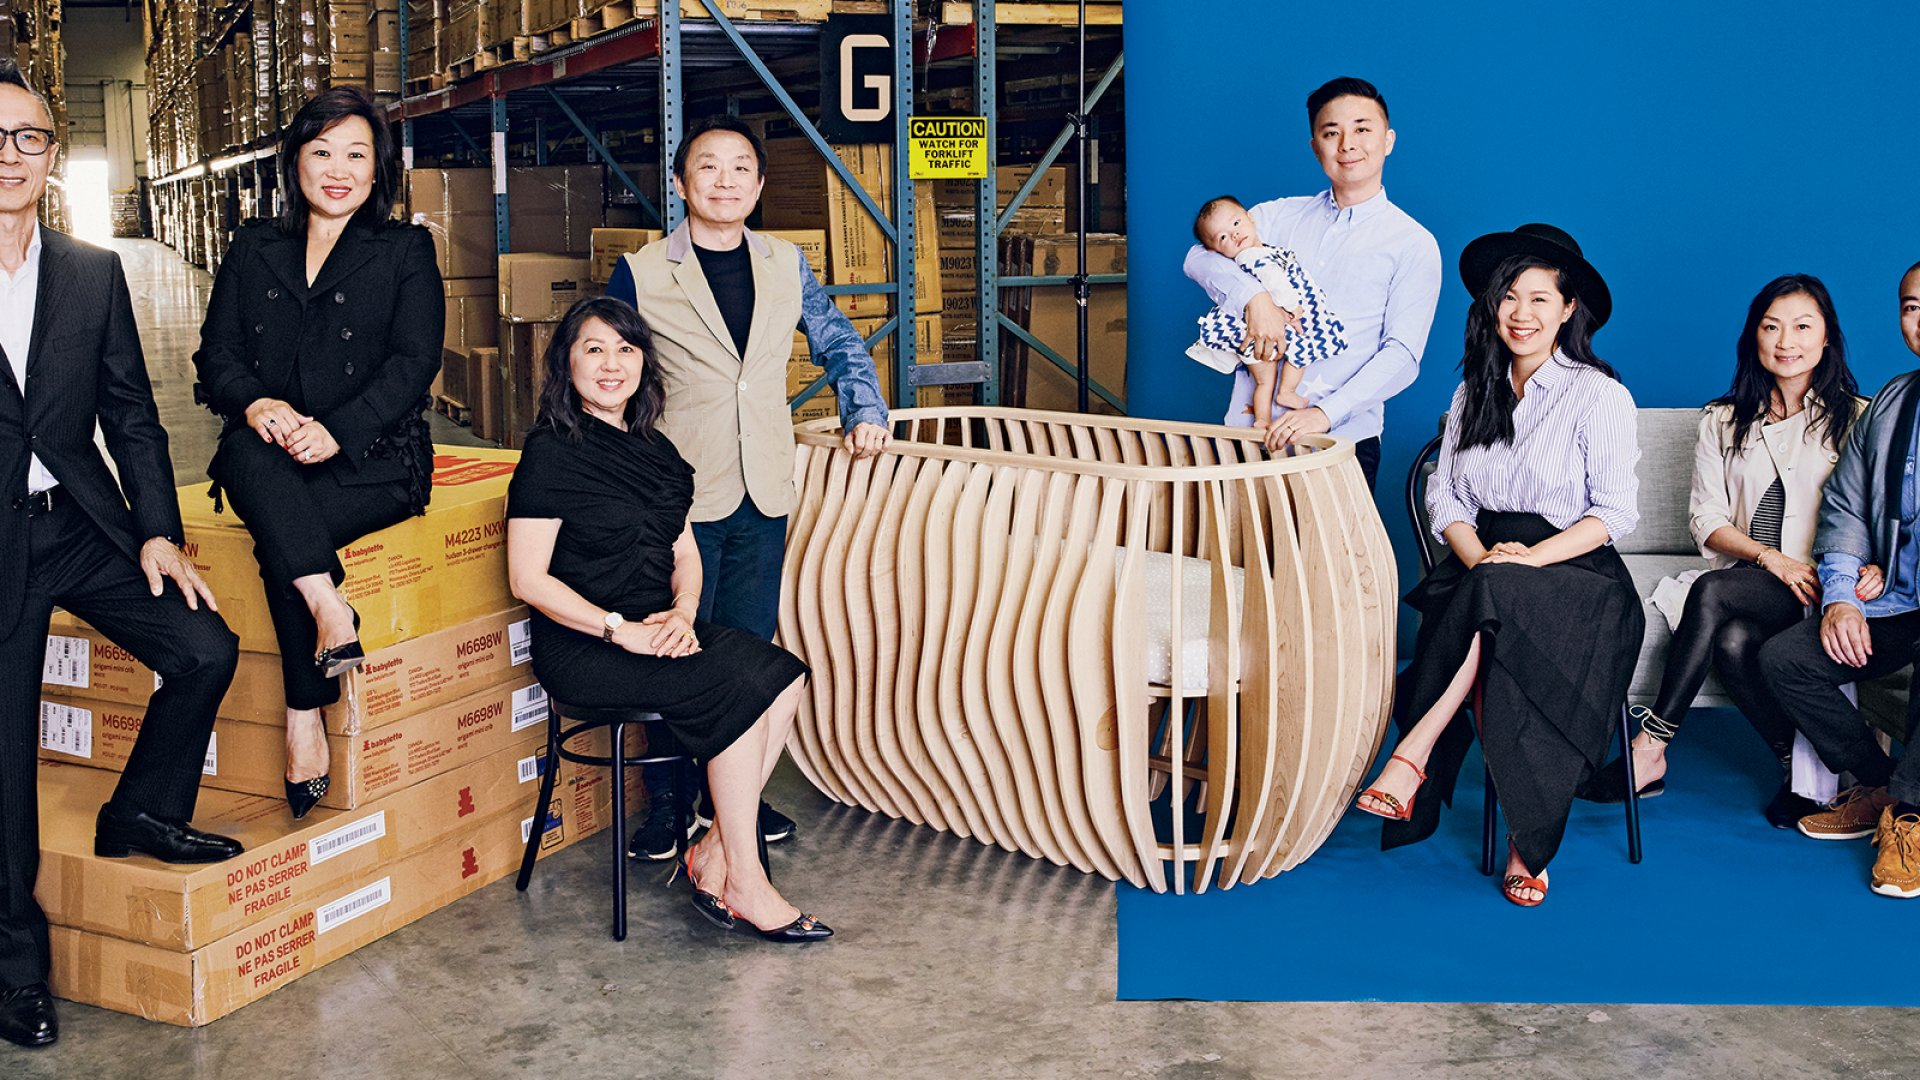 (From left) John Kwok, Julia Fong Yip, Maryann Fong, Daniel Fong, baby Sophie Fong, Teddy Fong, Tiffany Fong, Tracy Fong, and Eric Lin. The Montebello warehouse holds inventory of Million Dollar Baby's $7,500 Gradient crib, along with sofas from its new startup, Capsule Home.